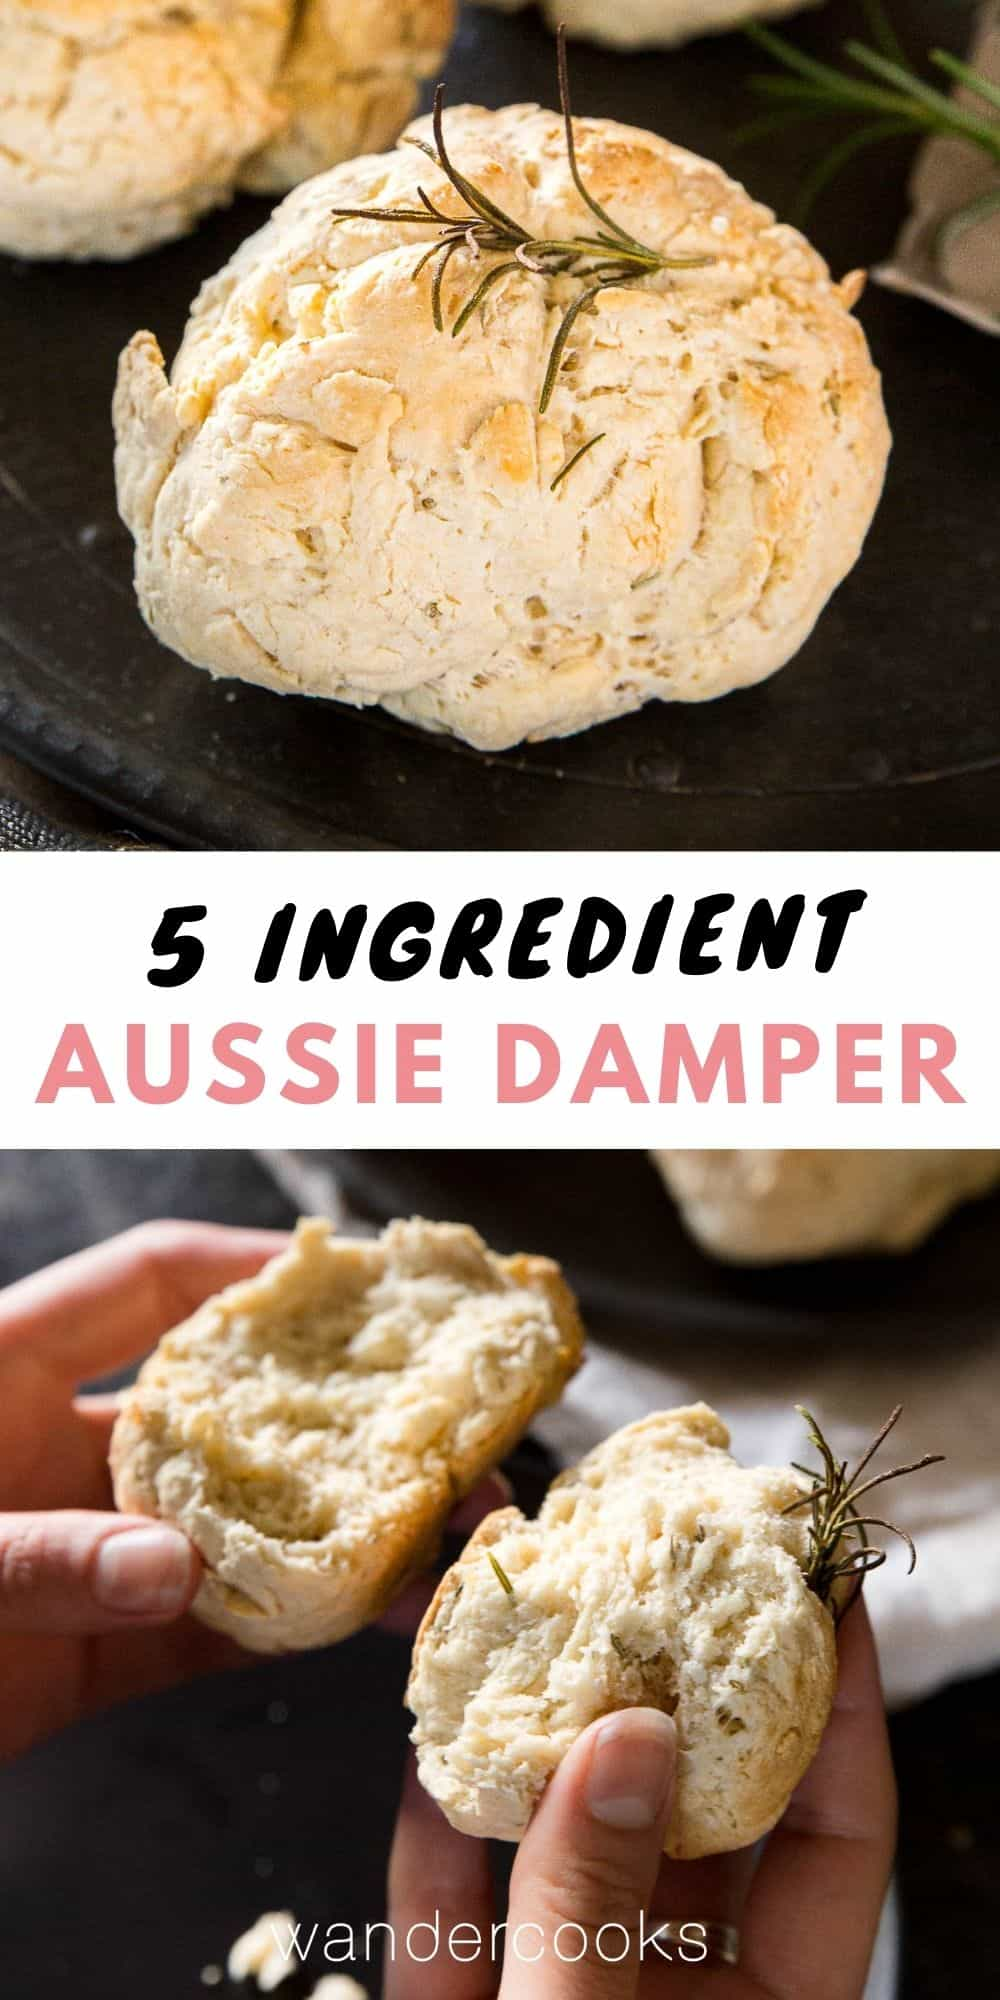 5 Ingredient Australian Damper Recipe